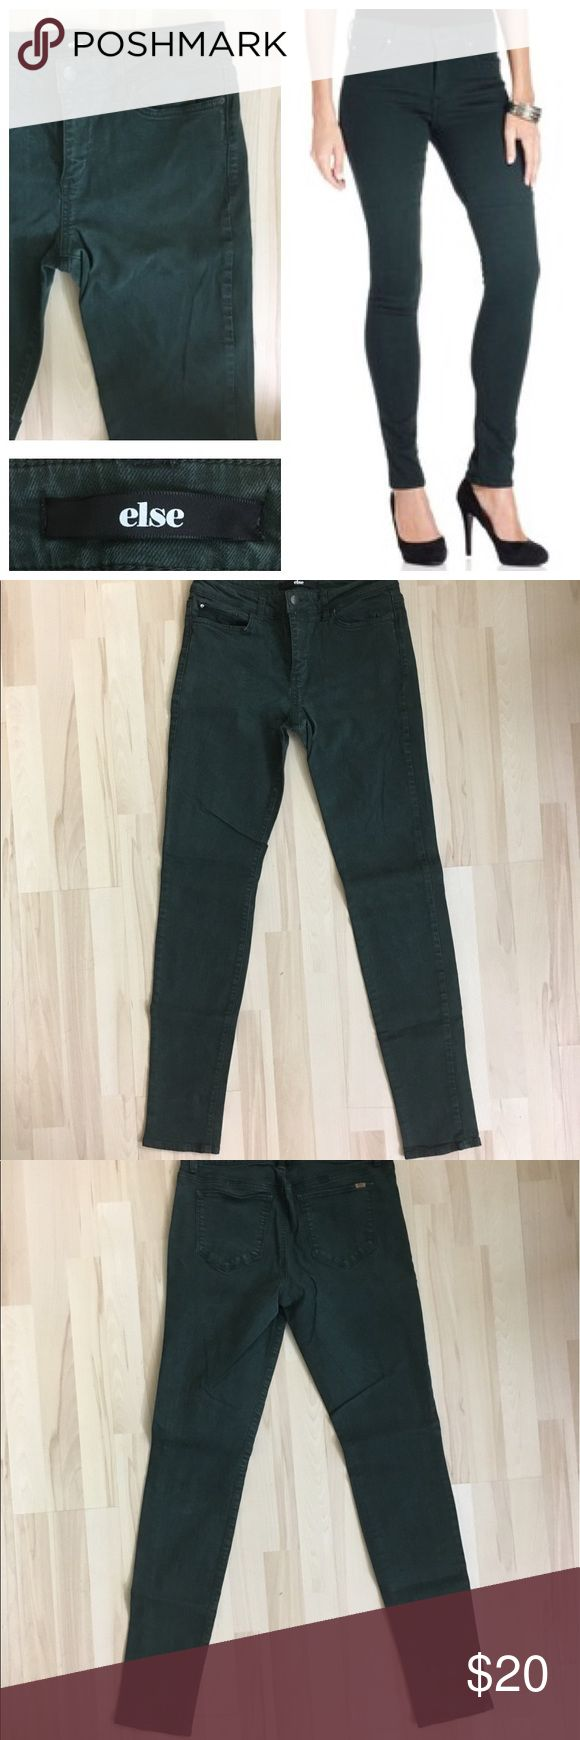 "Else Dark Green Skinny Jeans (size 29) Great condition - like new!  In a dark green wash perfect for fall, these Else Jeans skinny jeans hit the colored-denim trend right on the mark! Women's size 29.   29"" waist 31"" - 32"" inseam 39 - 40"" outseam Else Jeans Skinny"